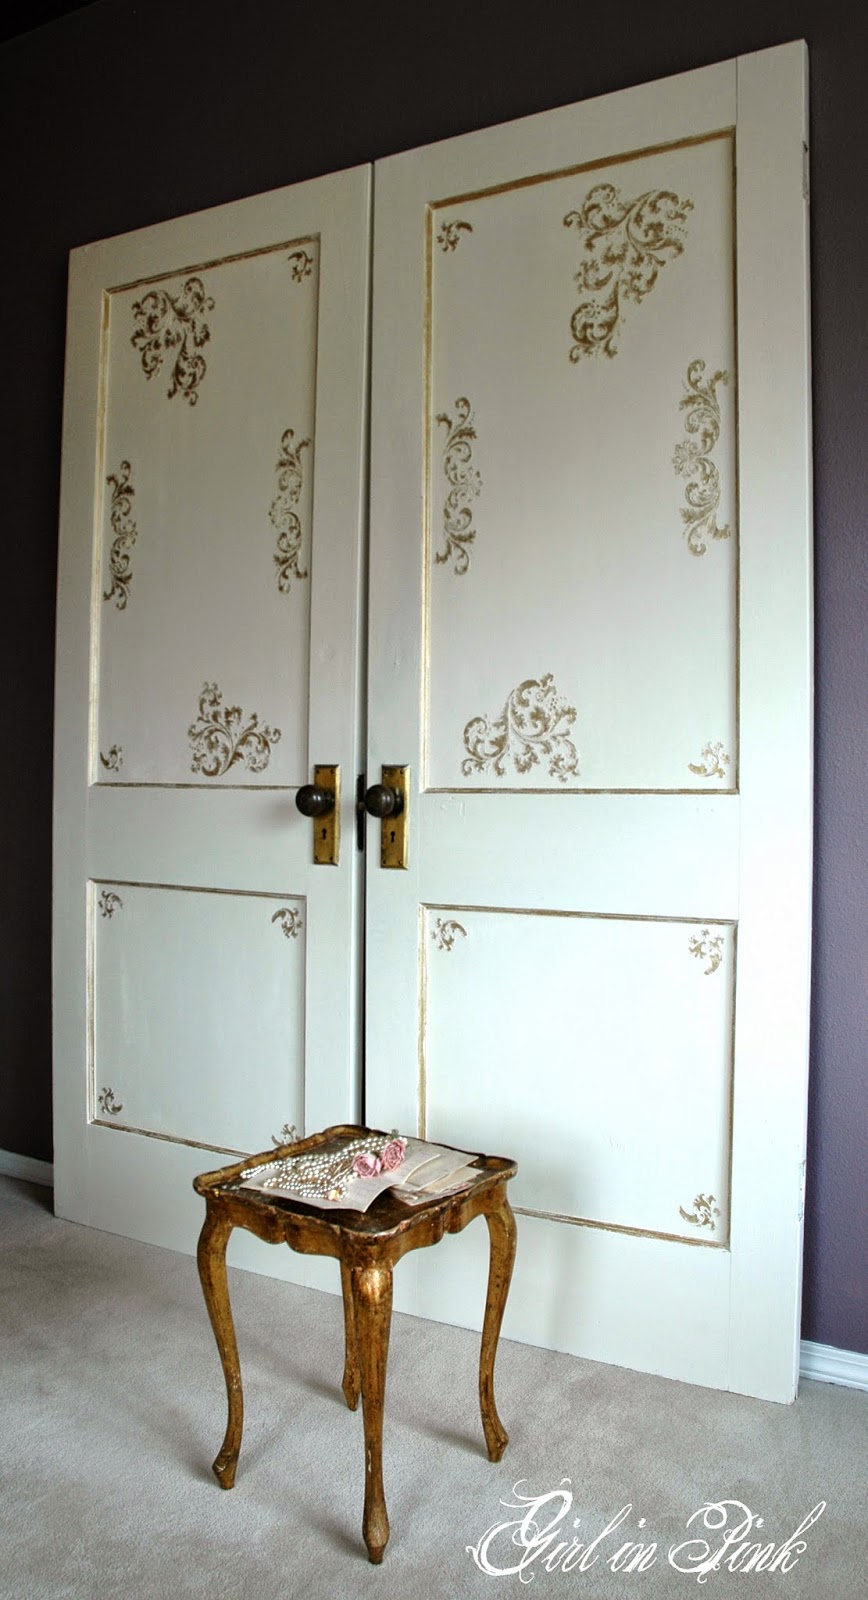 Downton Abbey Drawing Room Doors How to Create Your Own! & Girl in Pink: Downton Abbey Drawing Room Doors: How to Create Your Own!